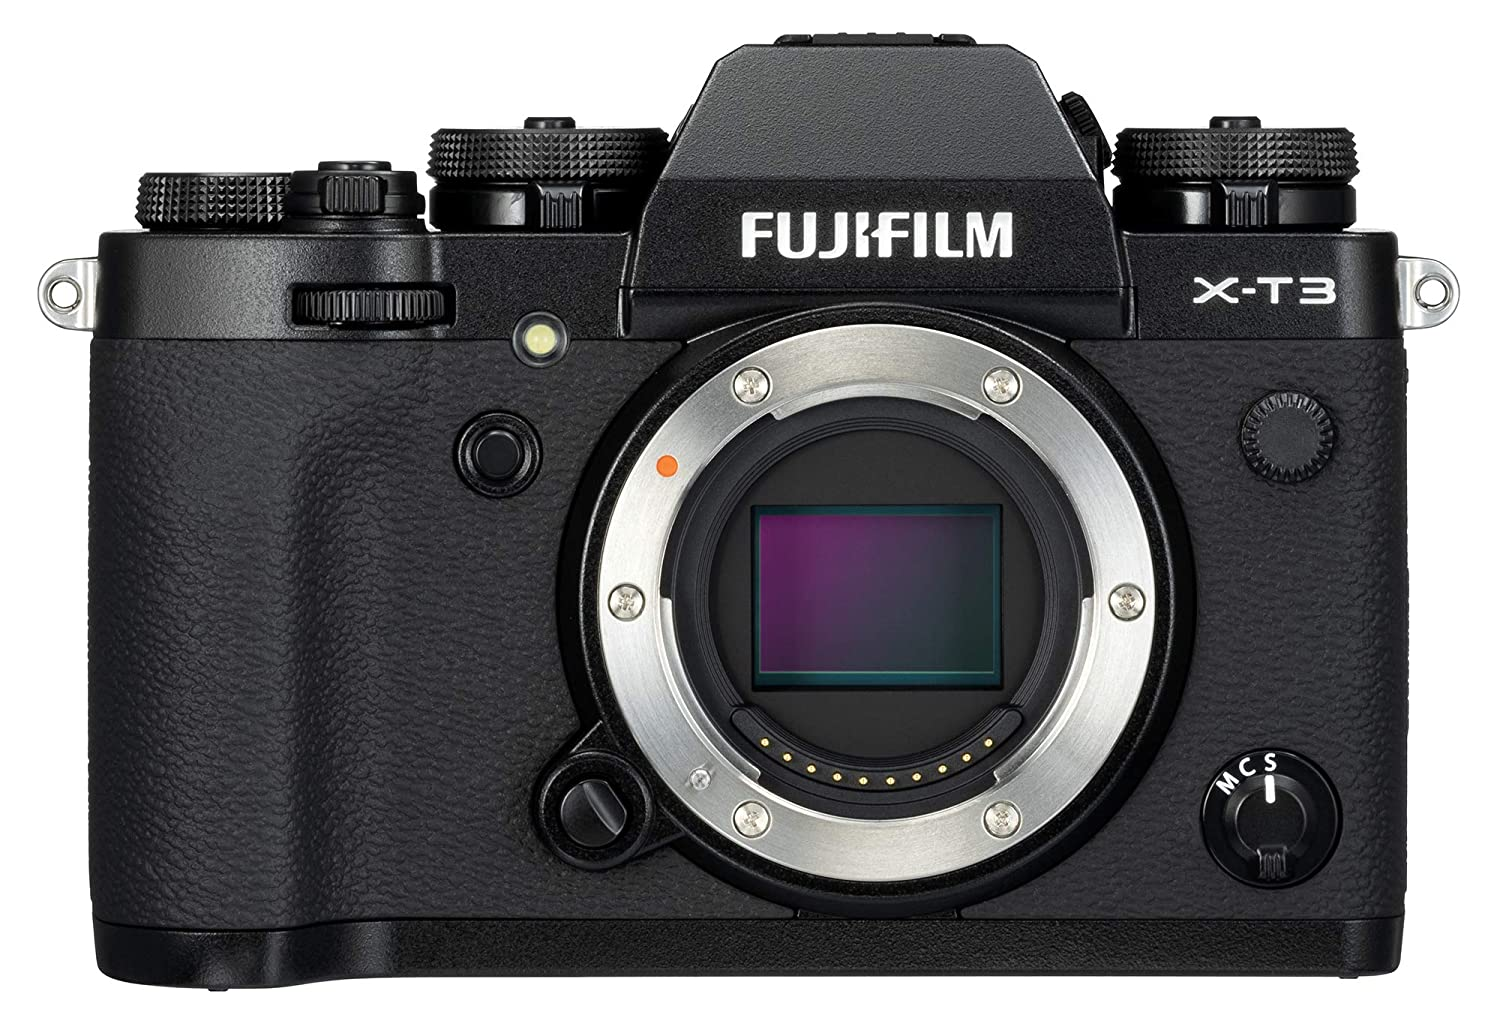 Fujifilm X-T3 Mirrorless Digital Camera w/XF18-55mm Lens Kit - Black X-T3 w/XF18-55 Lens Kit - Black